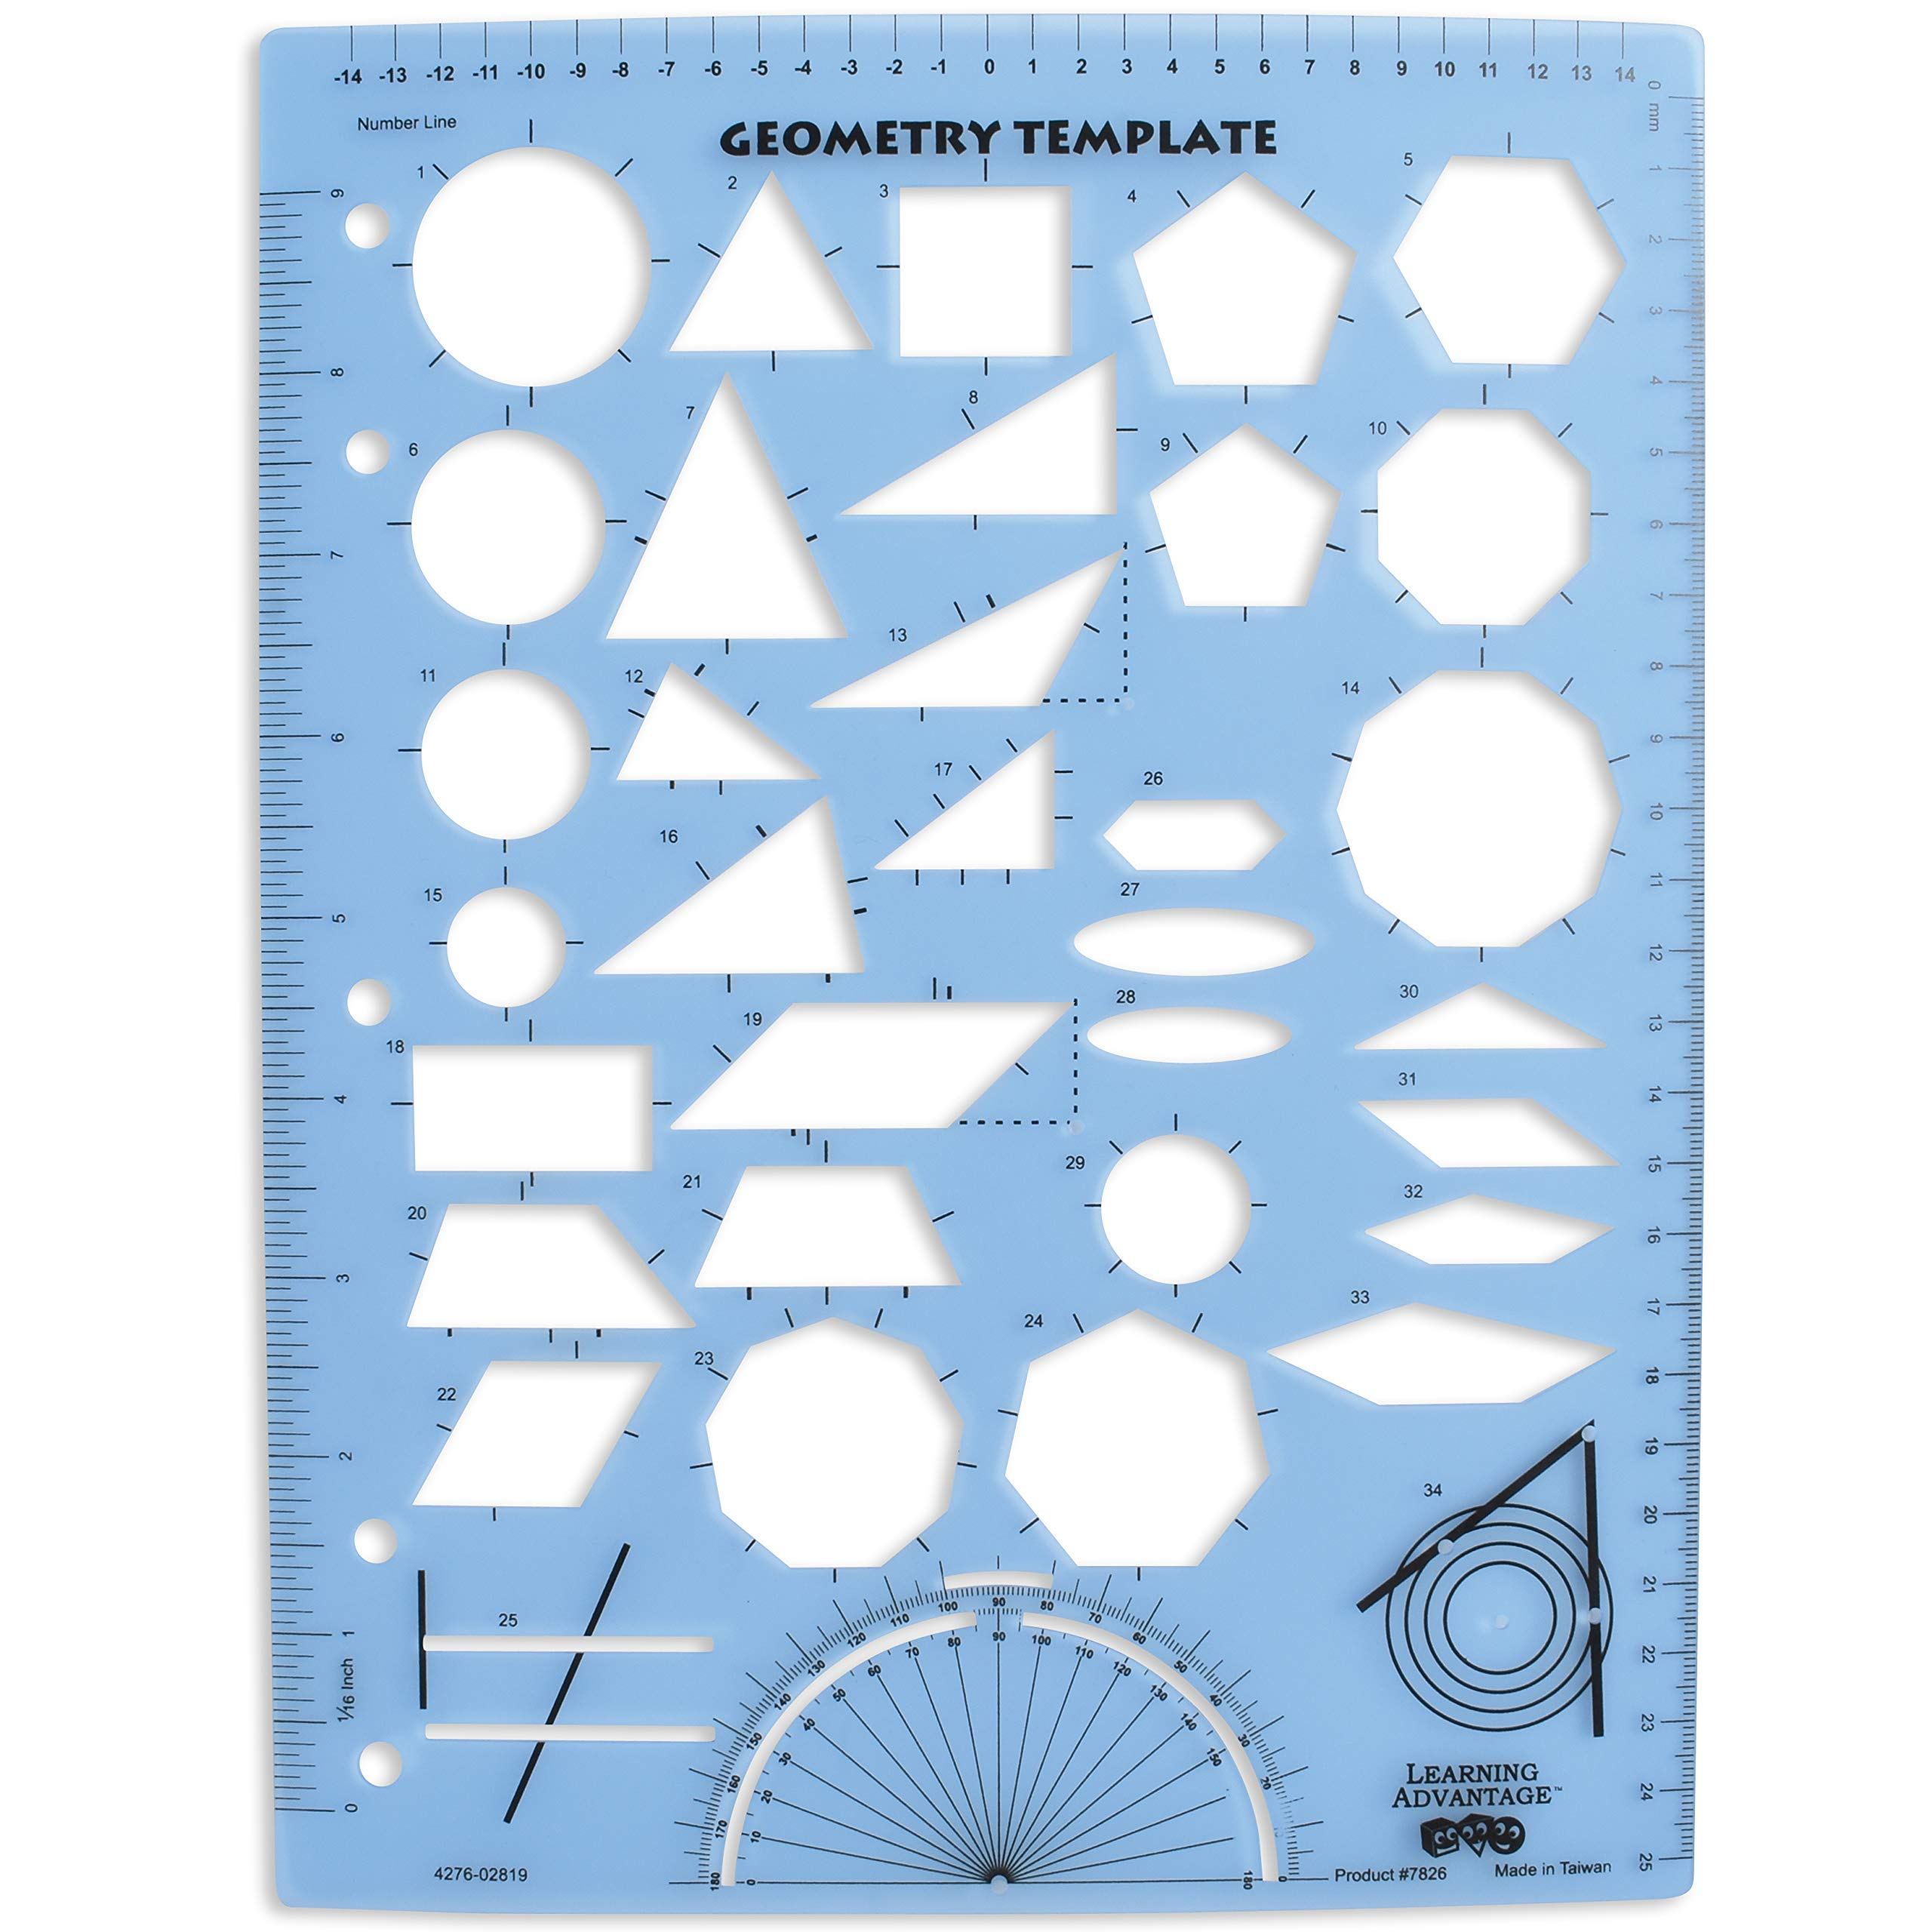 LEARNING ADVANTAGE Geometry Template - Sturdy Geometric Stencil to Draw 2D Shapes and Measure Angles - Includes Ruler plus a Number Line with Negative Values